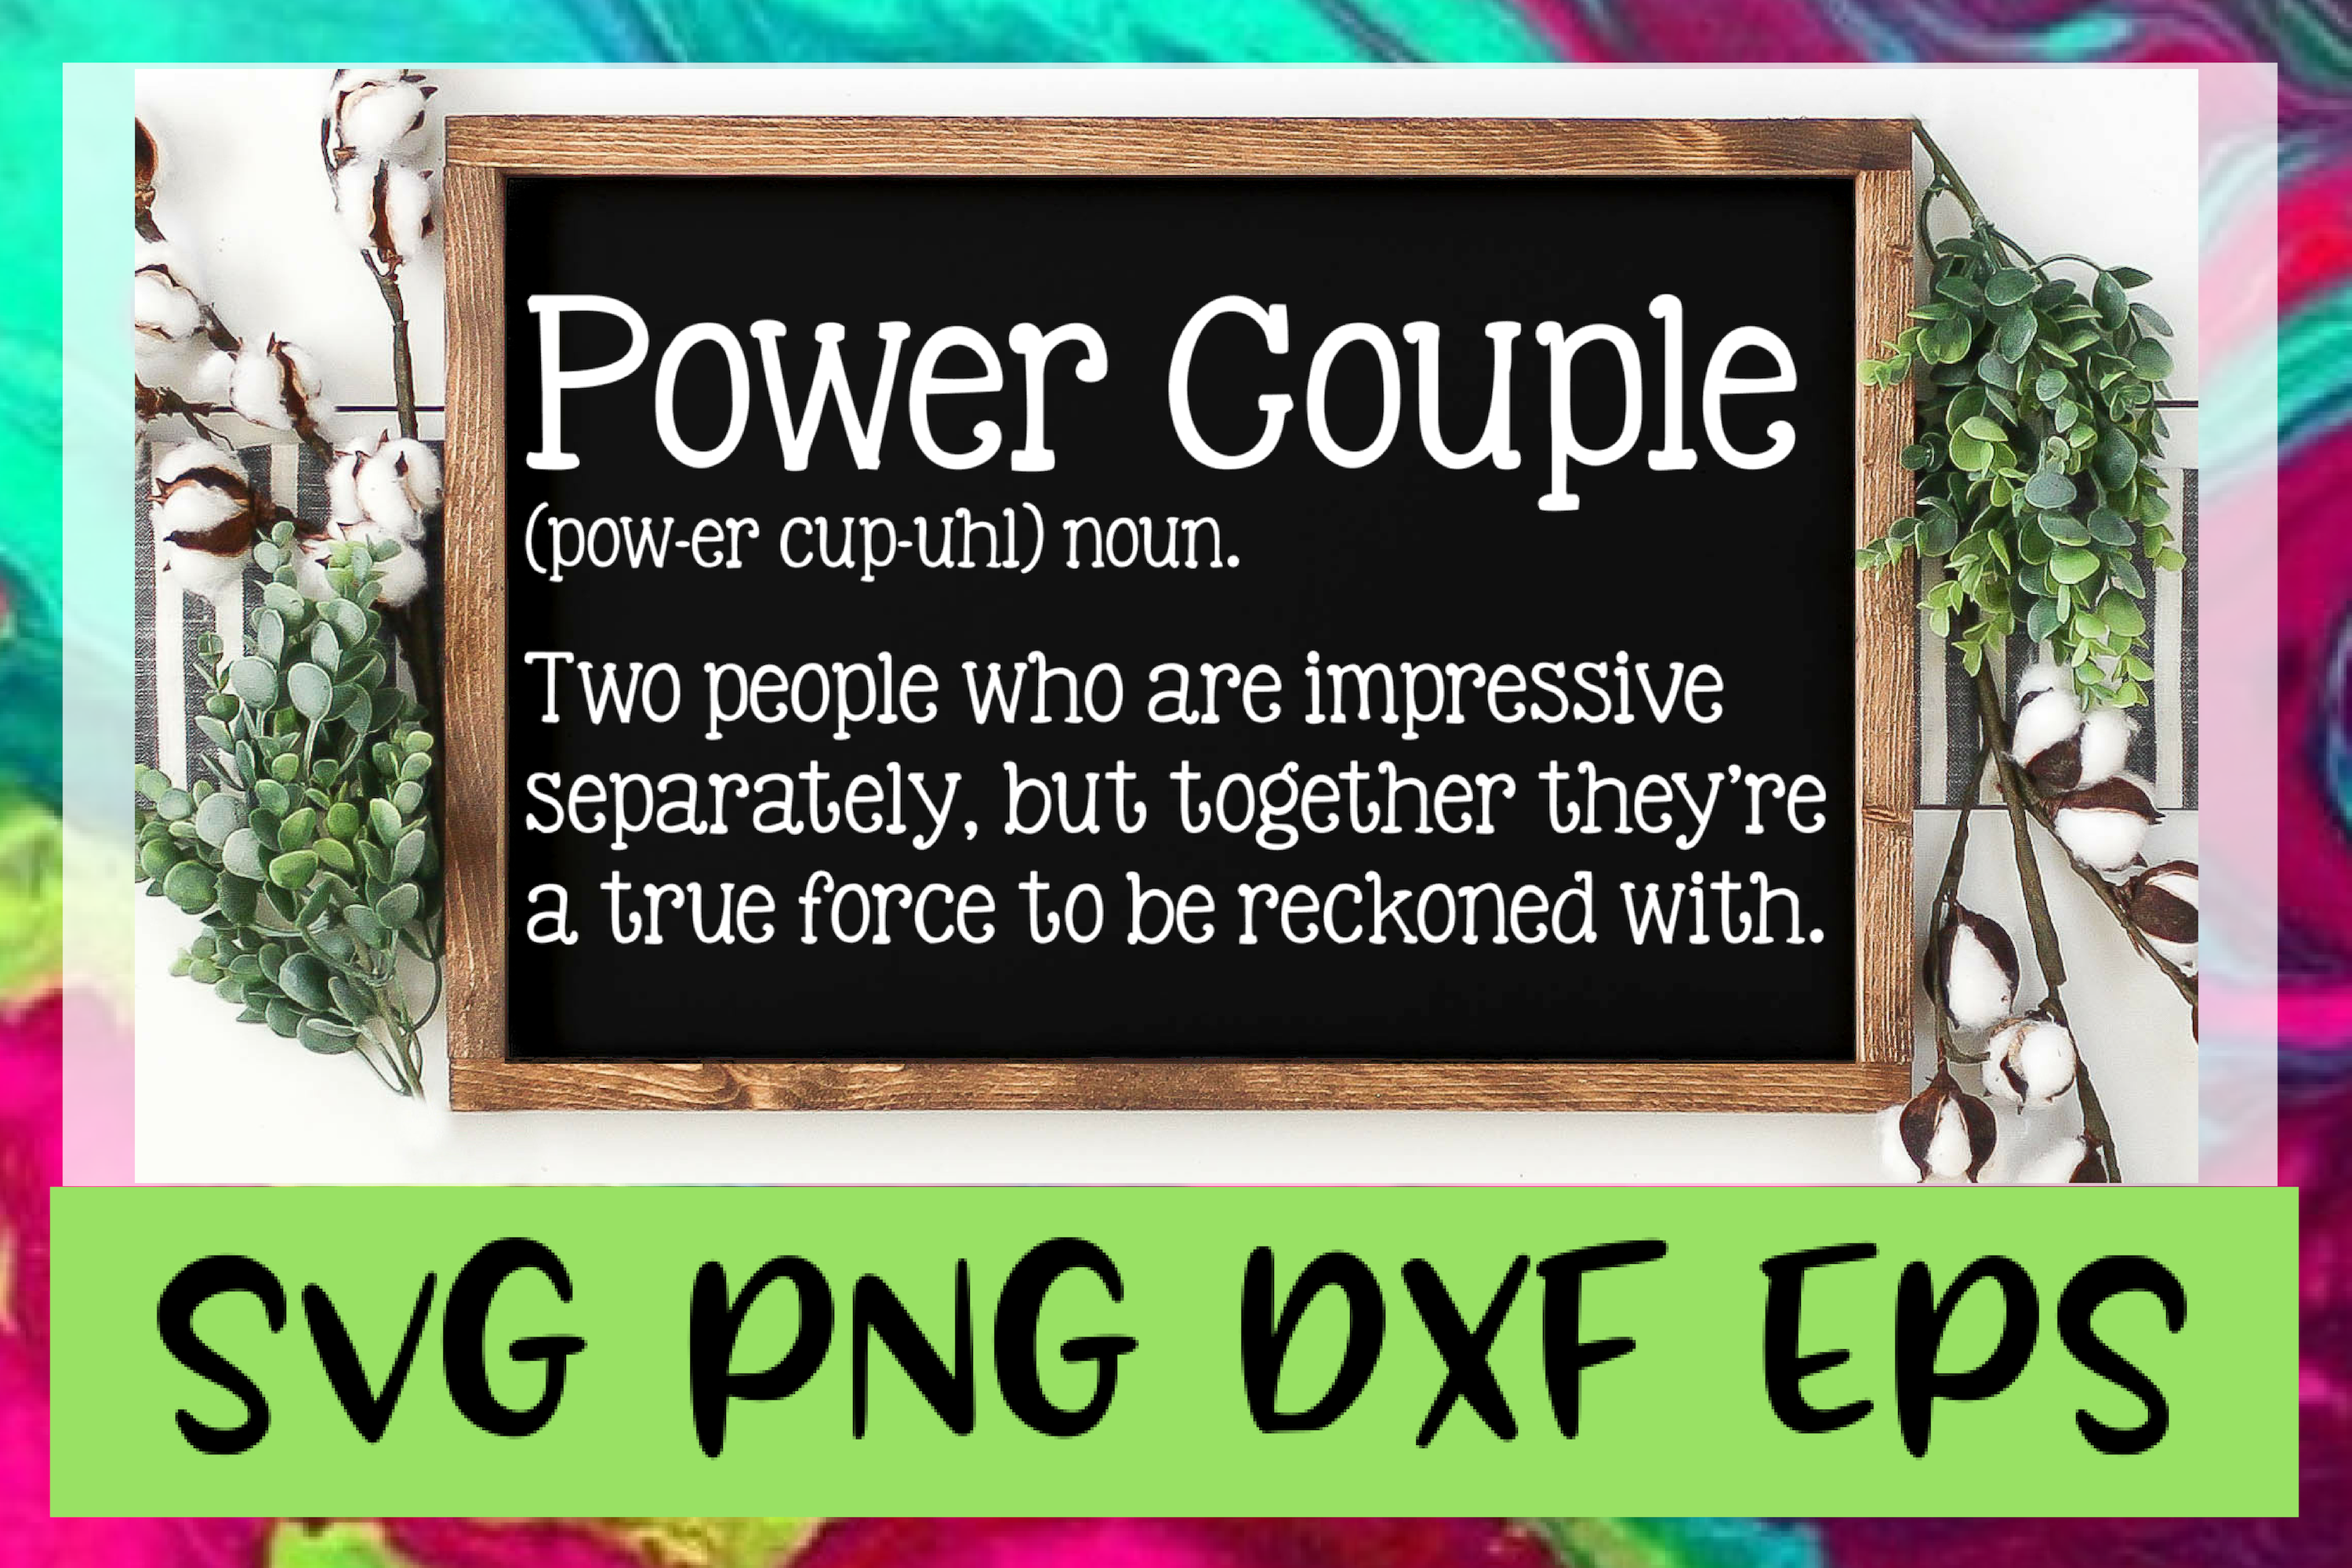 Power Couple Definition SVG PNG DXF & EPS Design Files example image 1